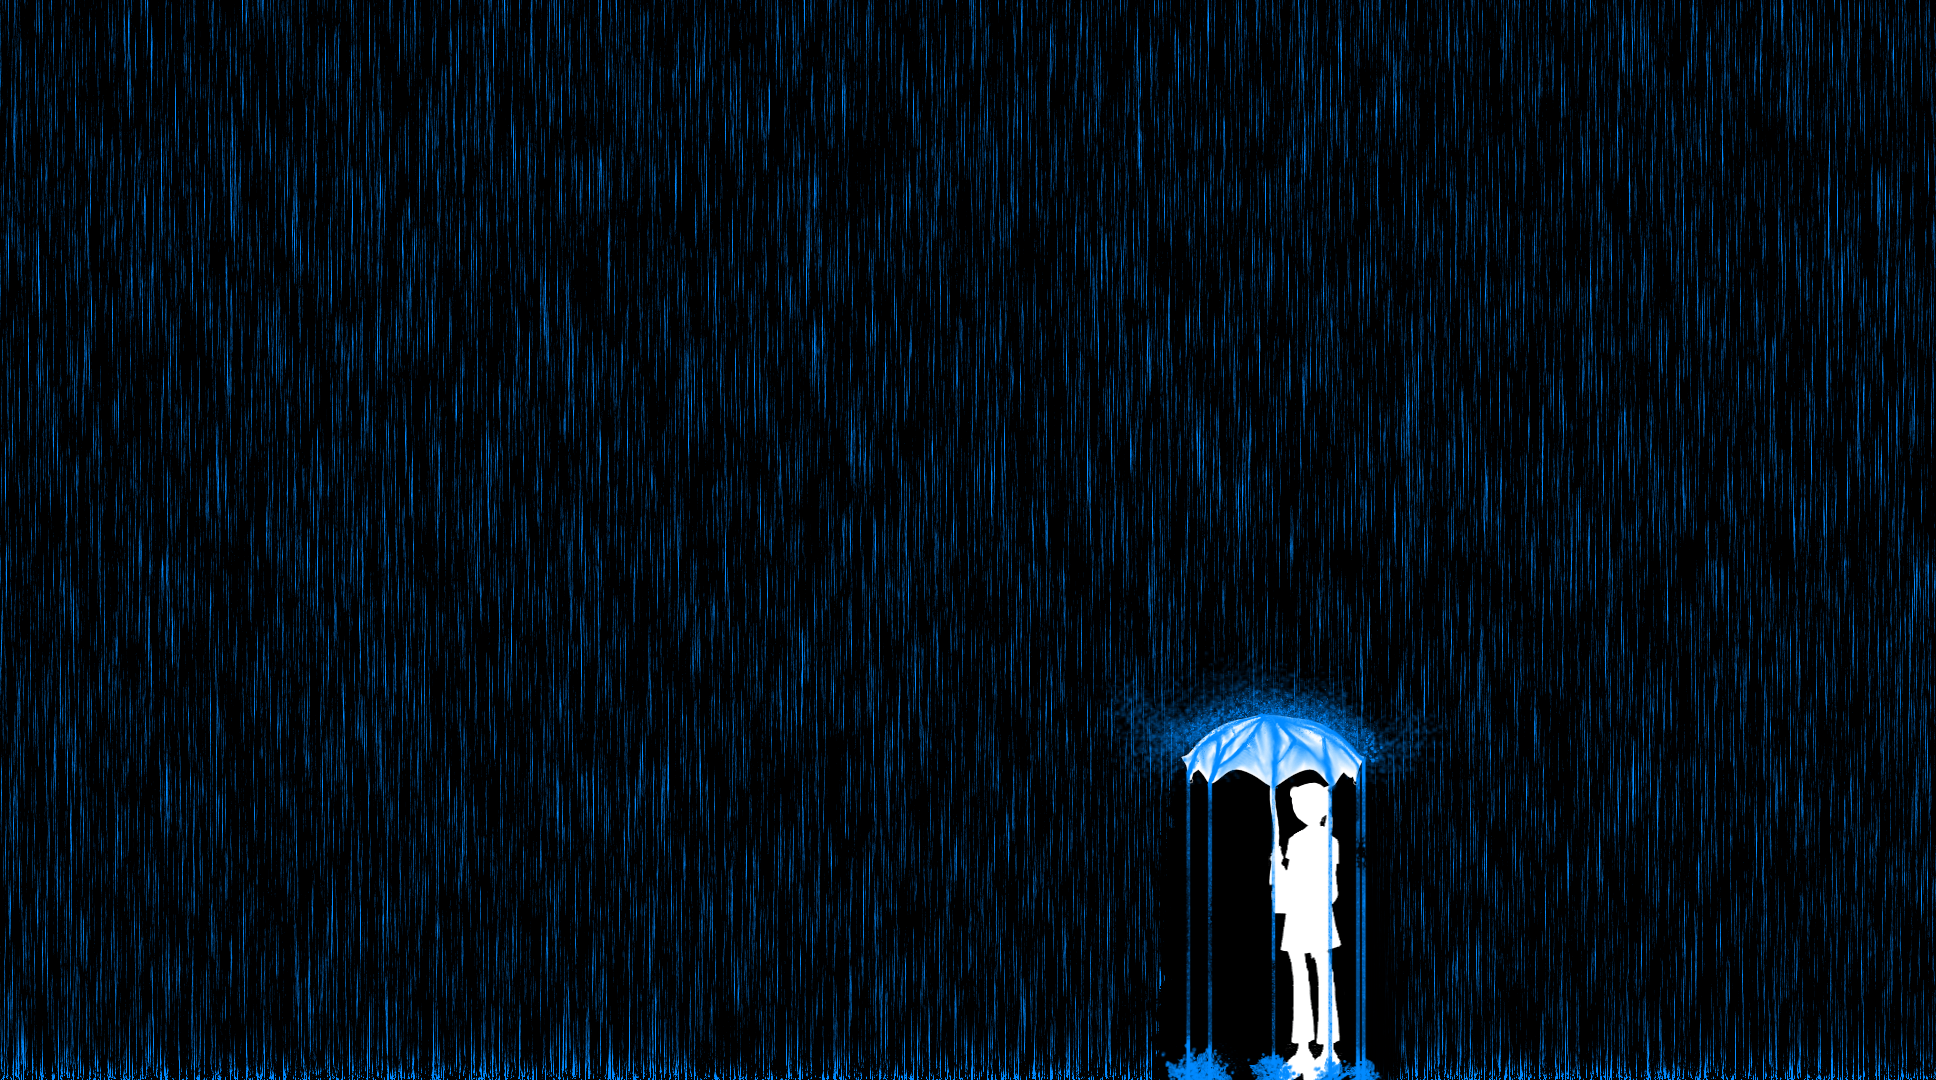 Rainy Day Wallpapers Wallpaper Cave